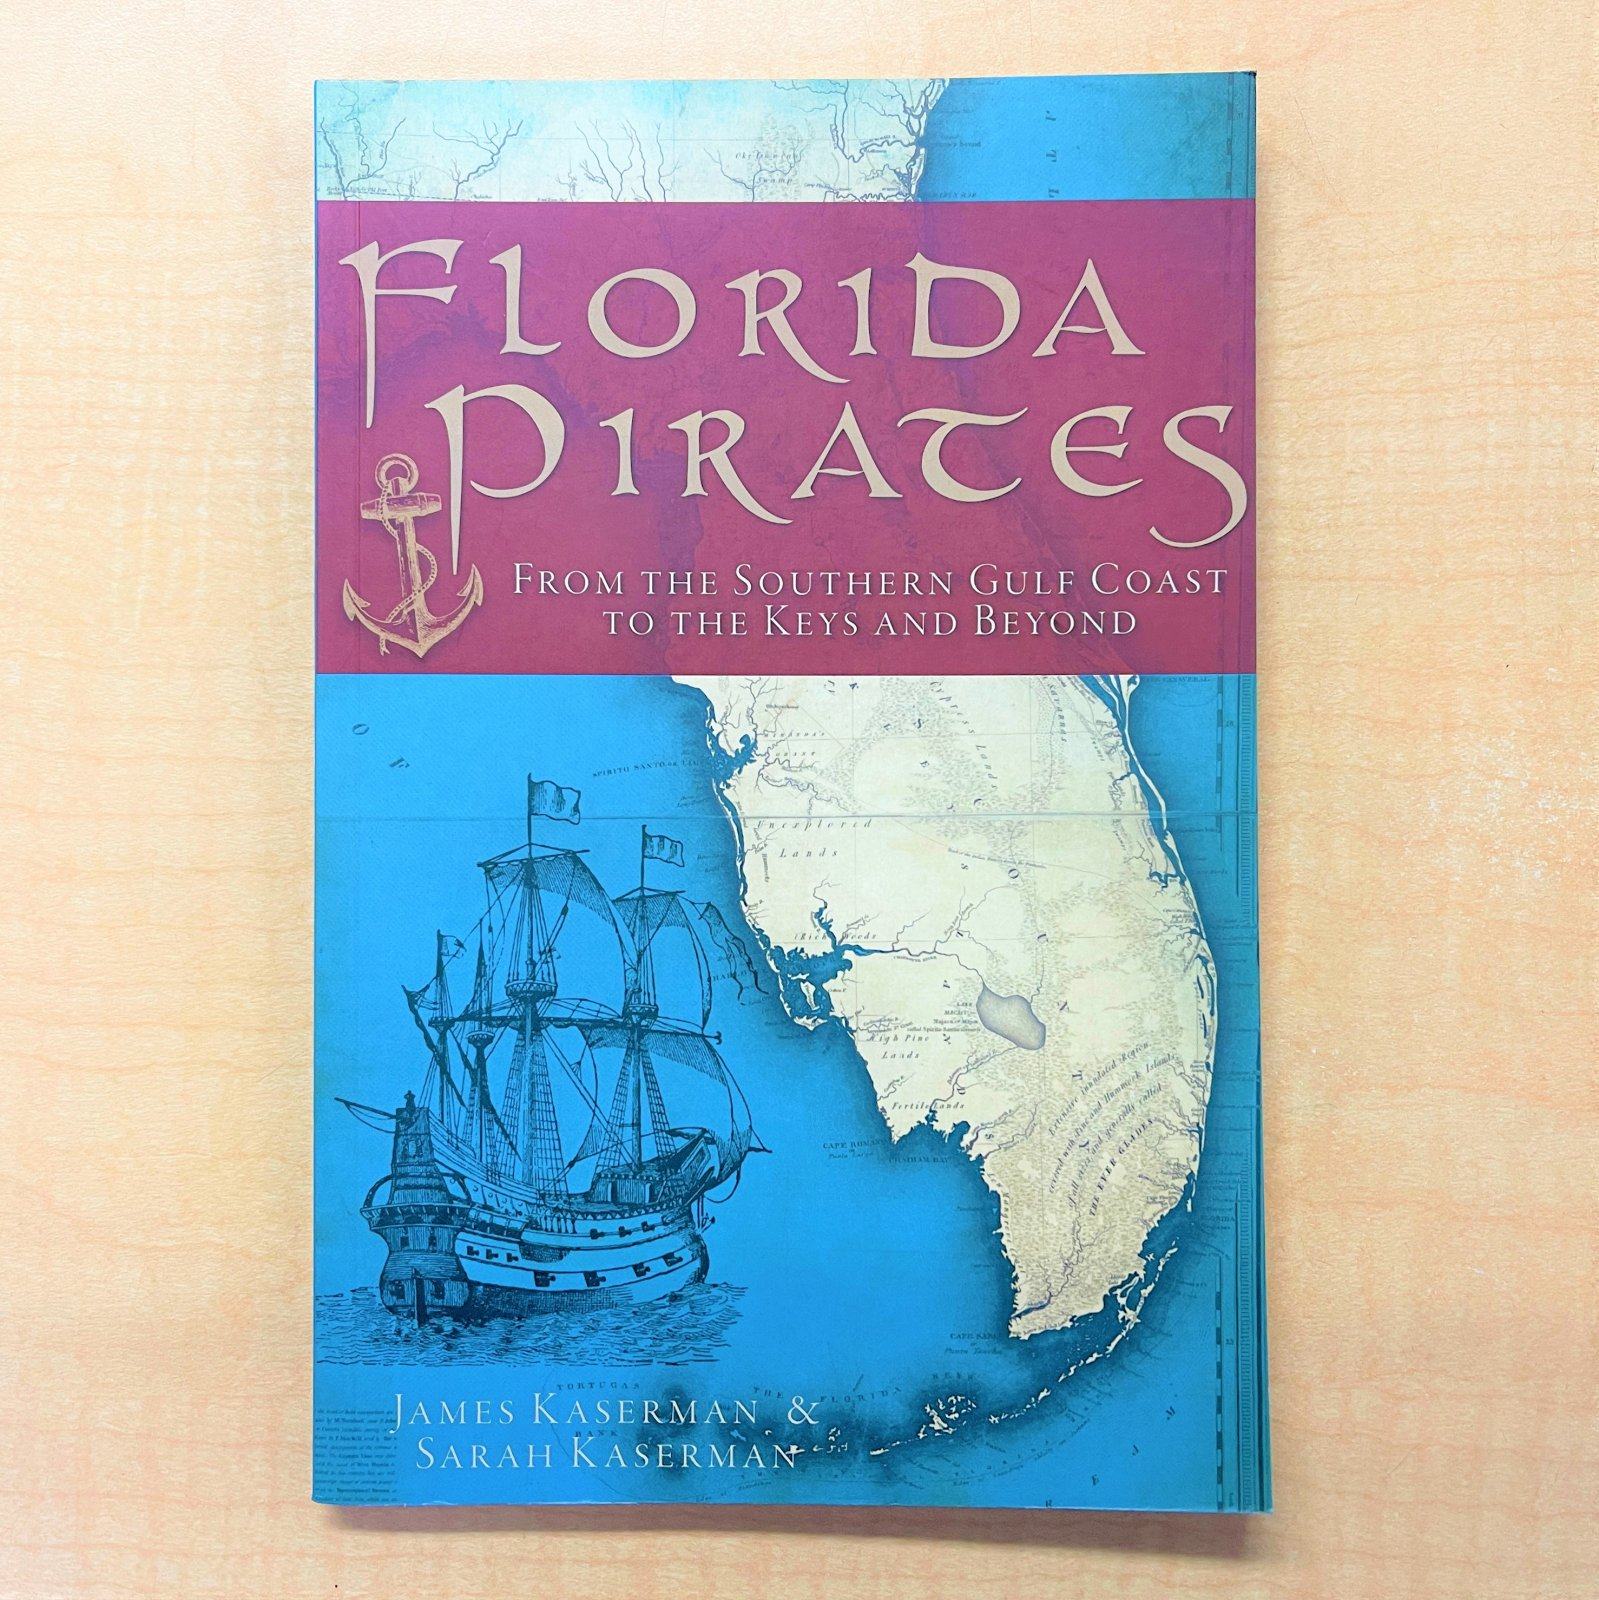 Florida Pirates from Southern Gulf to FL Keys and Beyond - BOOK